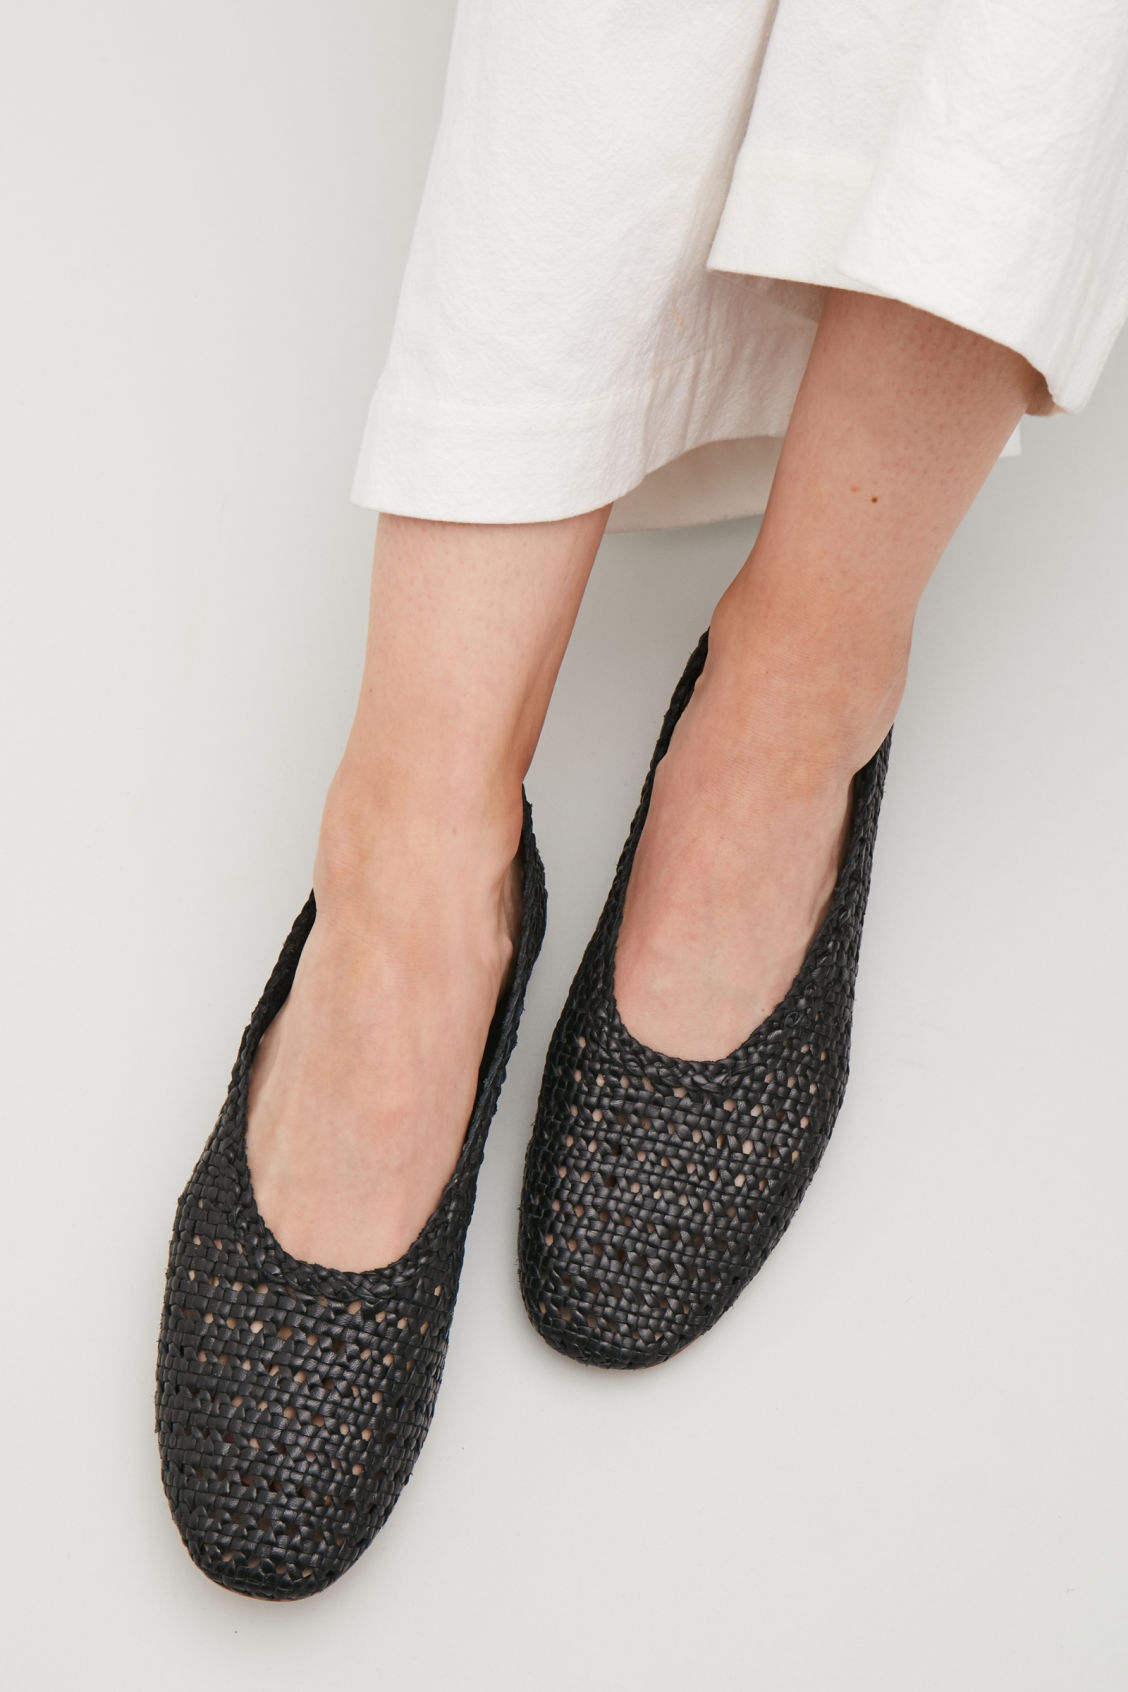 Detailed image of Cos braided slip-on shoes in black